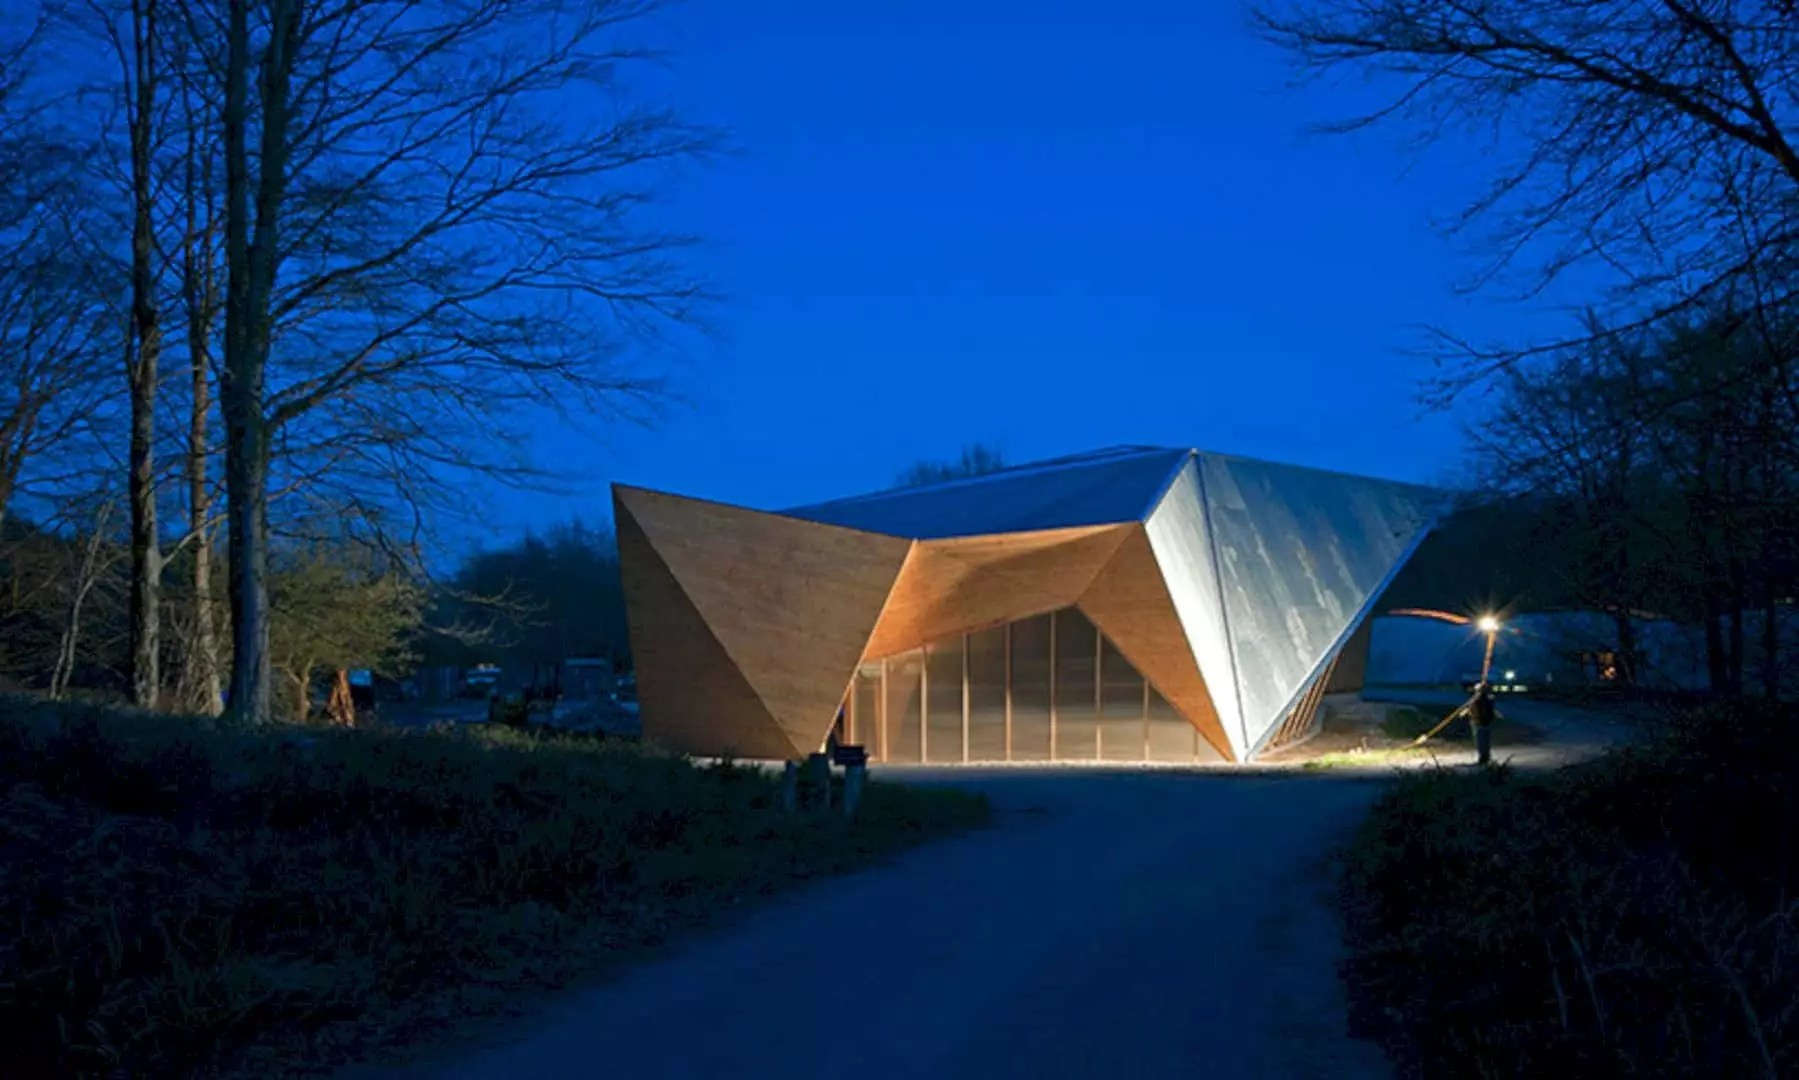 Hooke Park Big Shed: A New Sheltered Workspace for Research into Architectural Systems